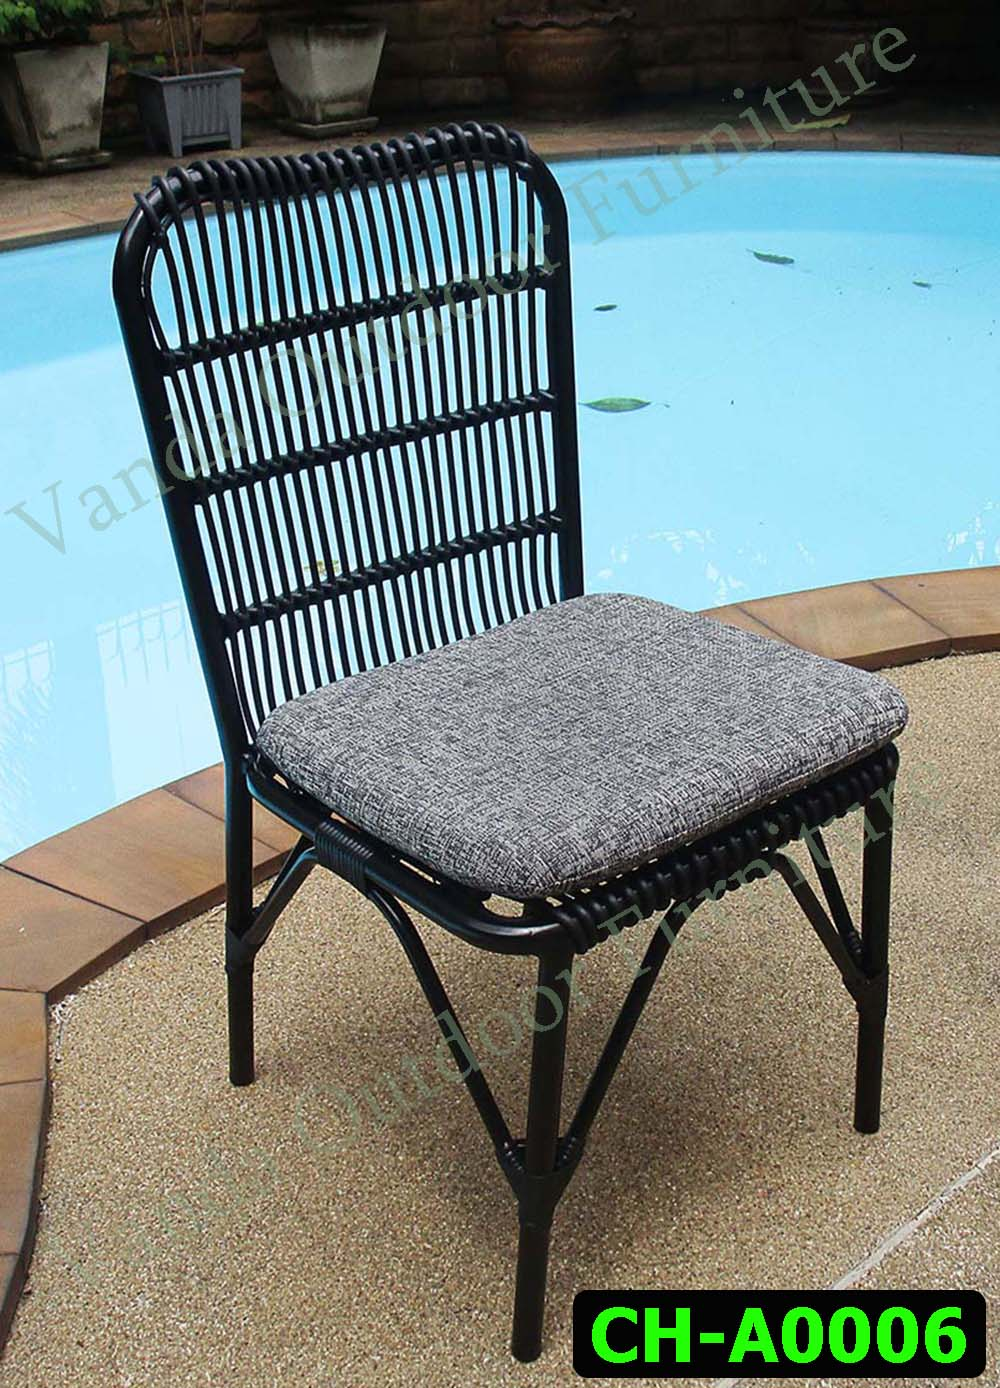 Rattan Chair Product code CH-A0006